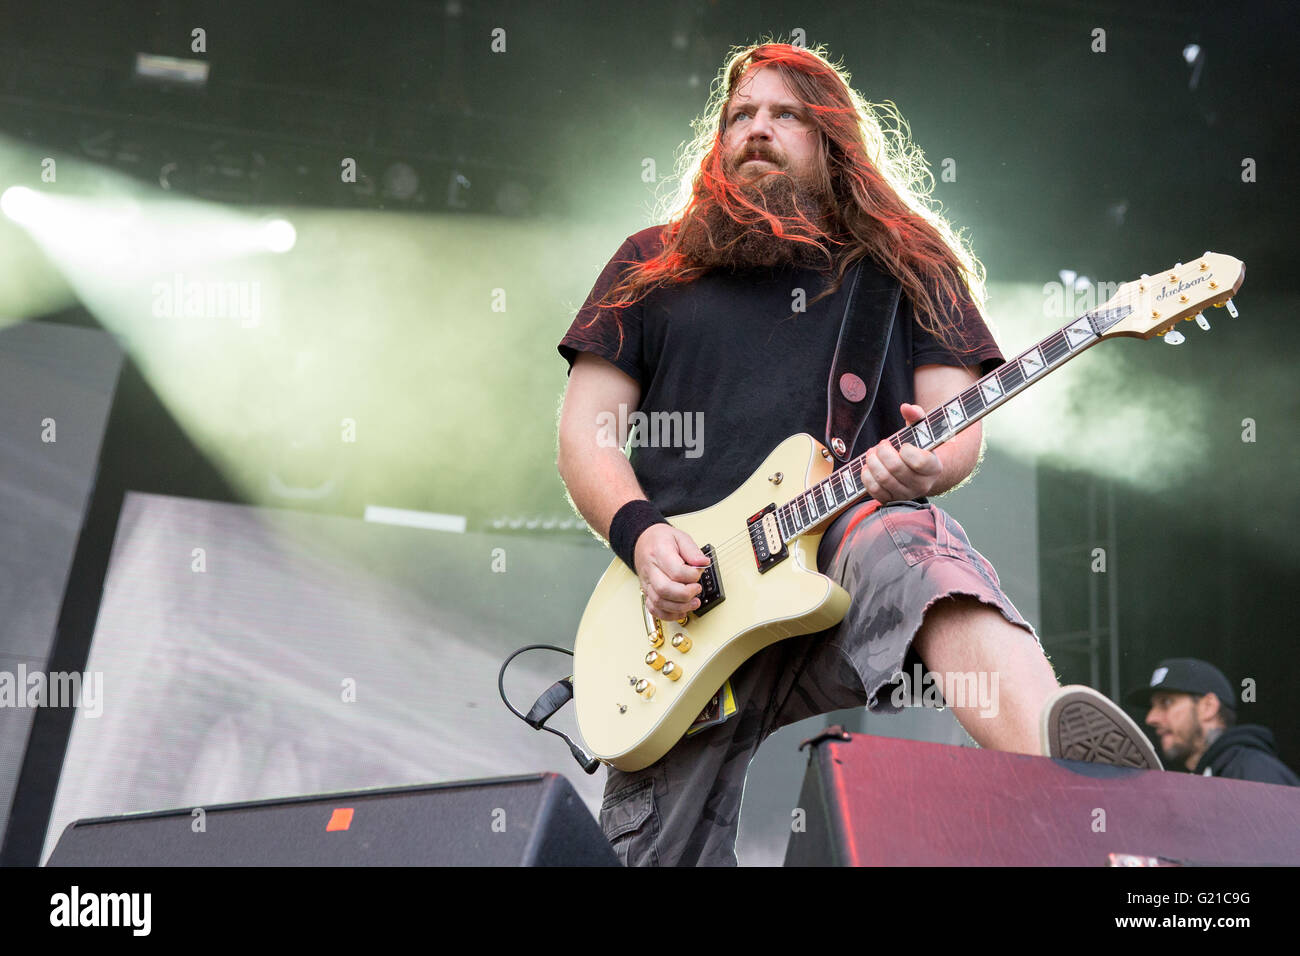 May 21, 2016 - Columbus, Ohio, U.S - Guitarist MARK MORTON of Lamb ... for Lamb Of God Live 2016  53kxo